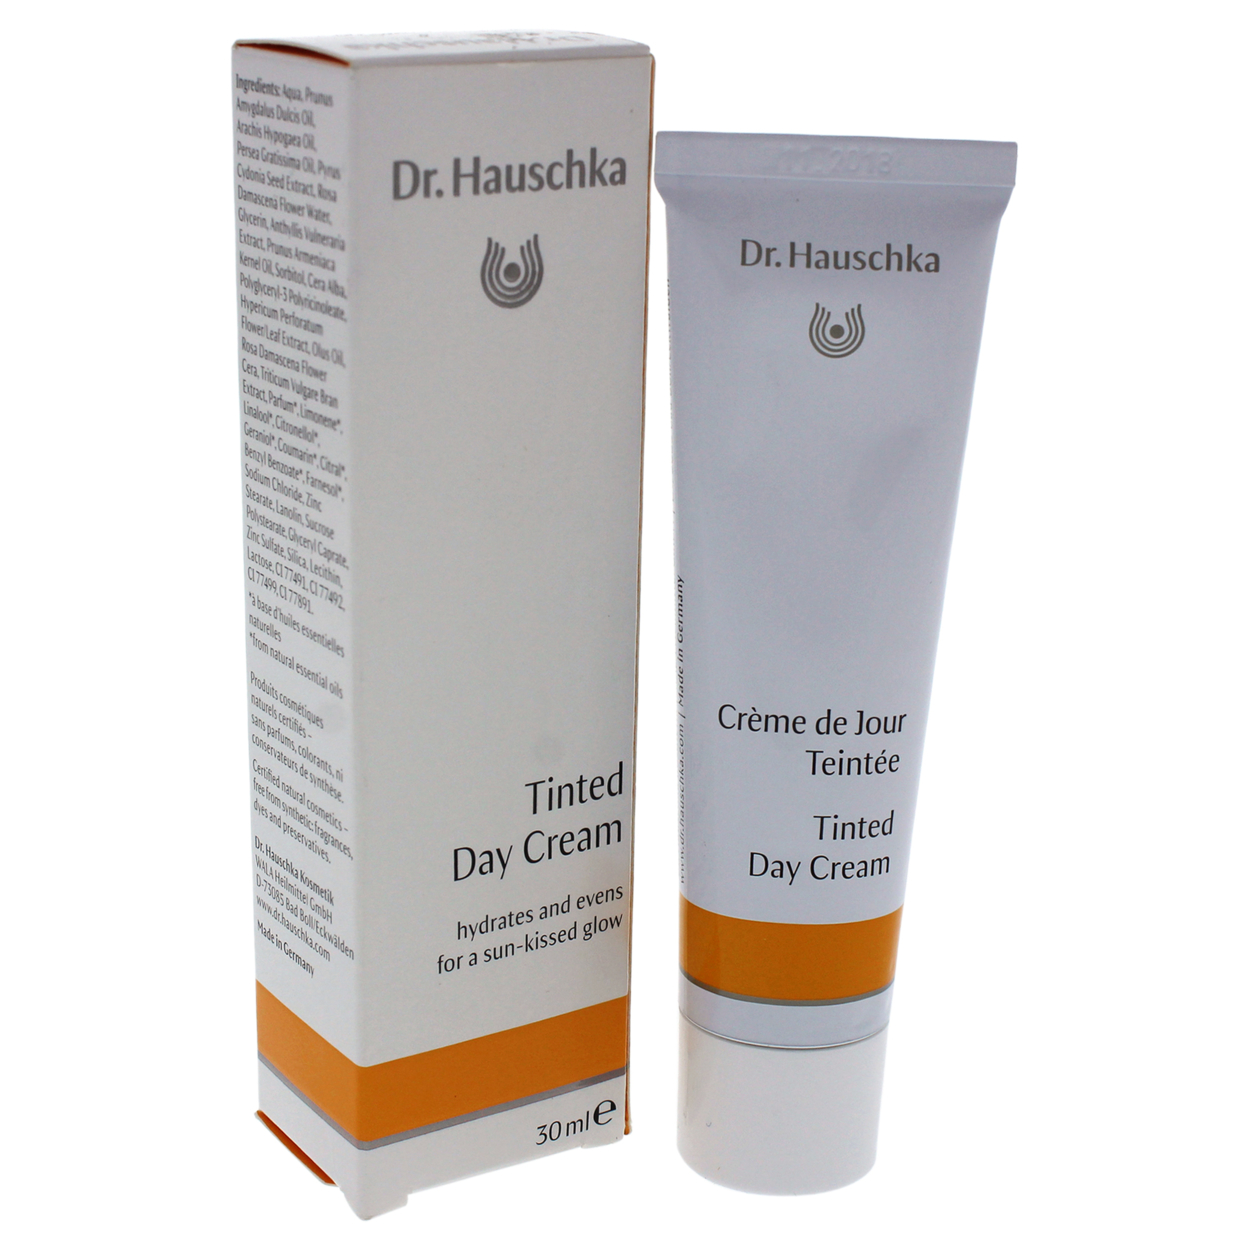 Tinted Day Cream by Dr. Hauschka for Women - 1 oz Cream дневной уход christina step 8b ultimate defense tinted day cream spf20